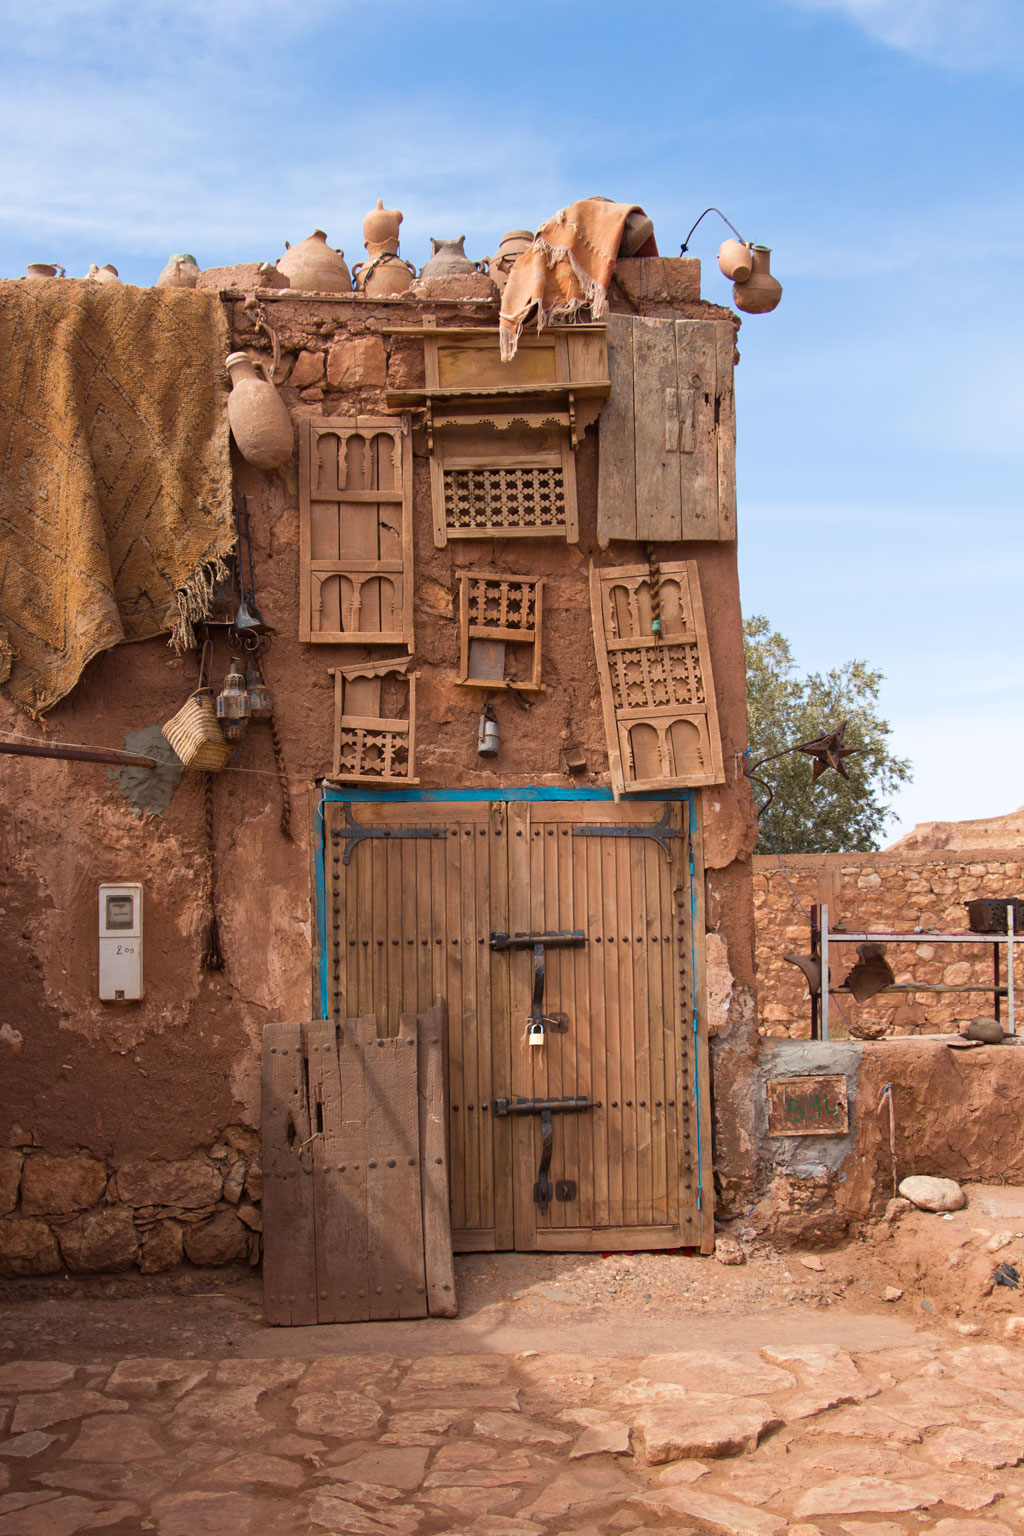 Marokko Trip – Ait Ben Haddou | SOMEWHERE ELSE